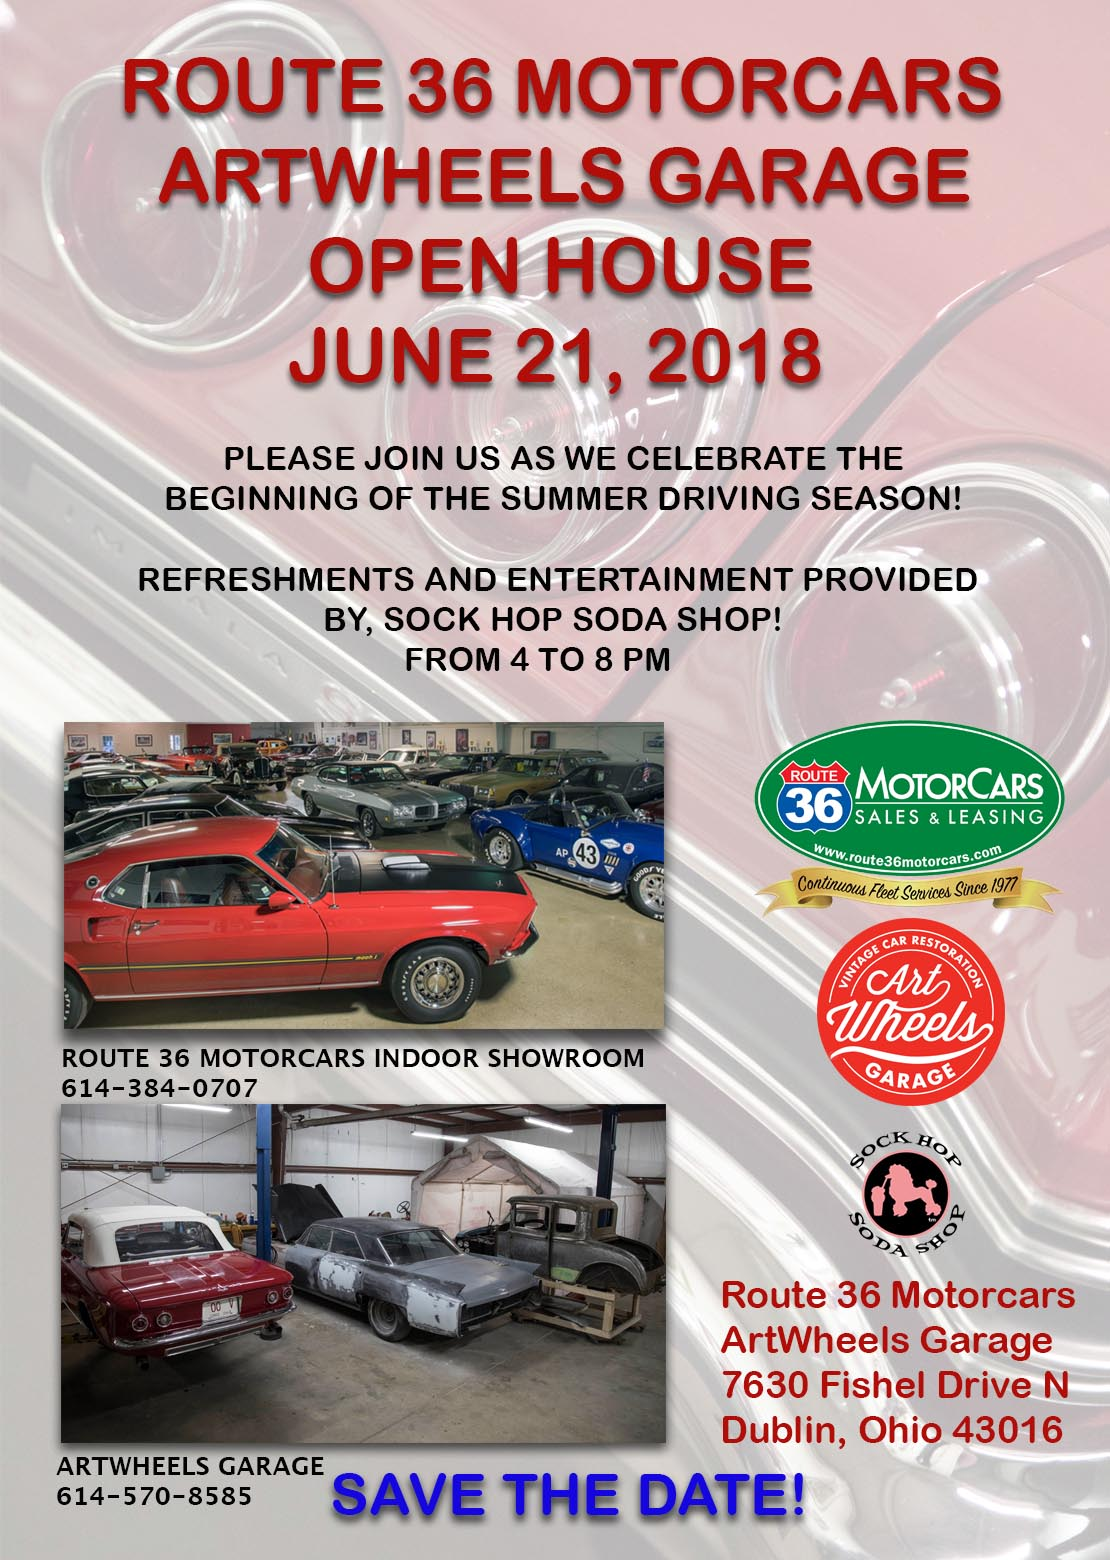 Art Wheels Open House June 21, 2018 ArtWheels Garage 7630 Fishel Drive N. Dublin OH